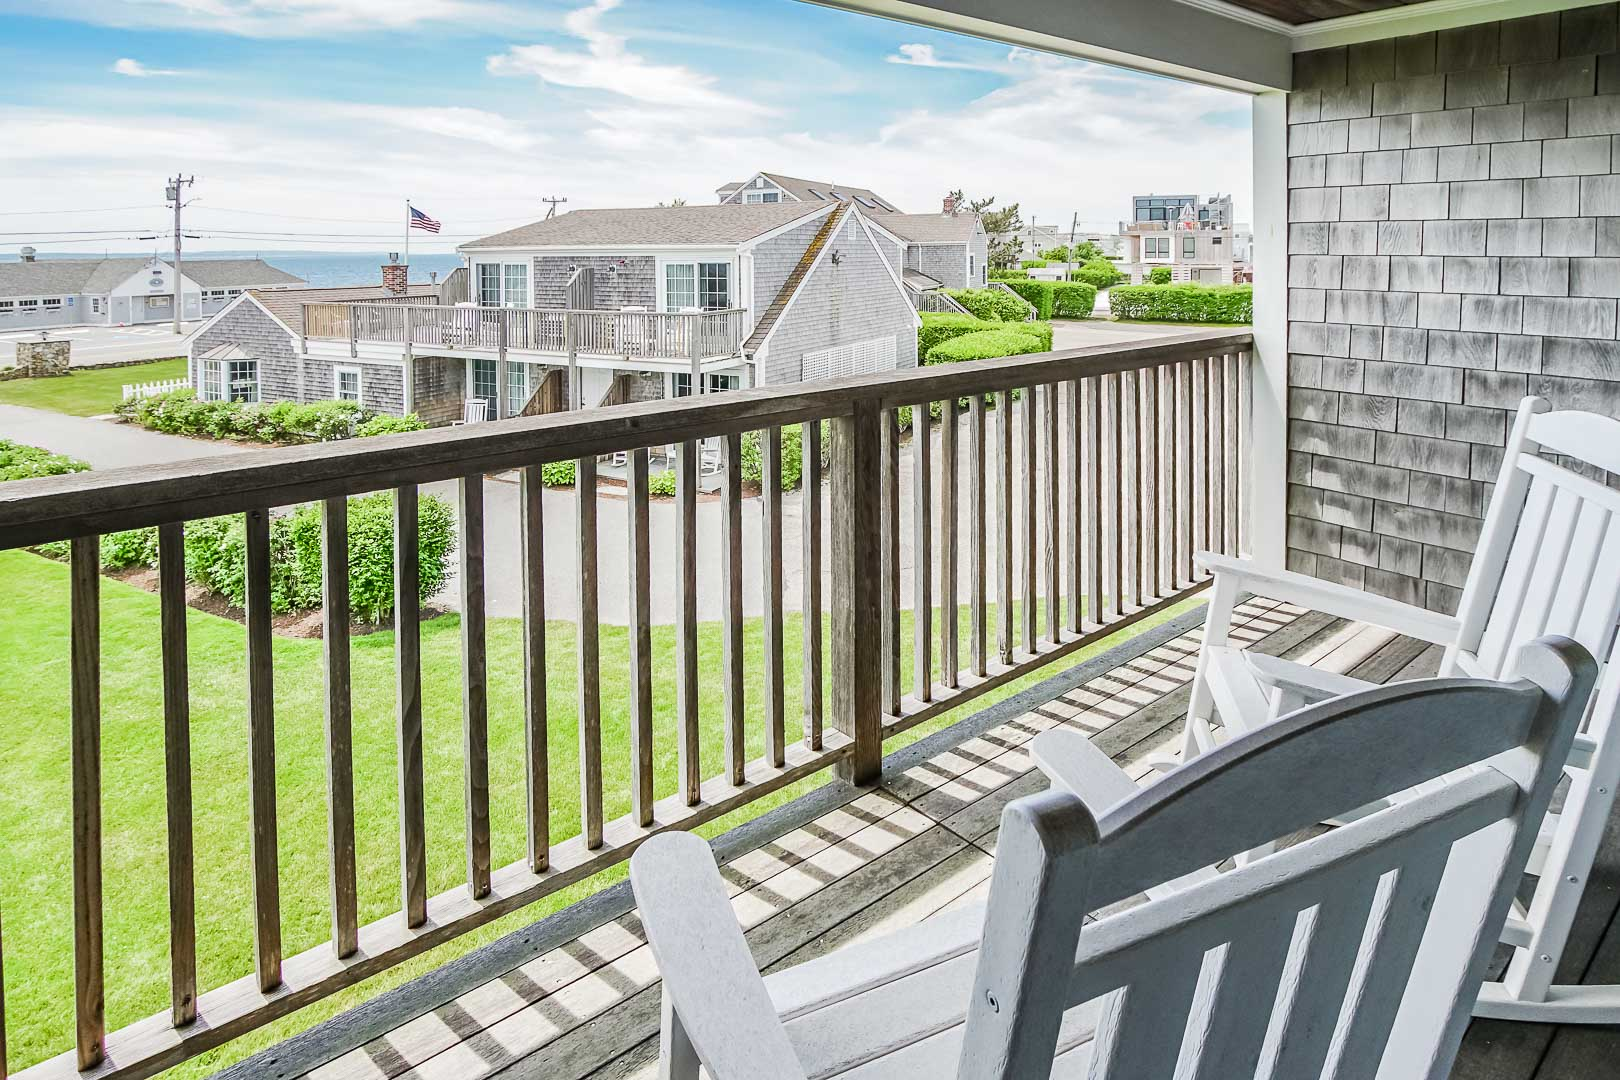 A pleasant view from the balcony at VRI's Beachside Village Resort in Massachusetts.